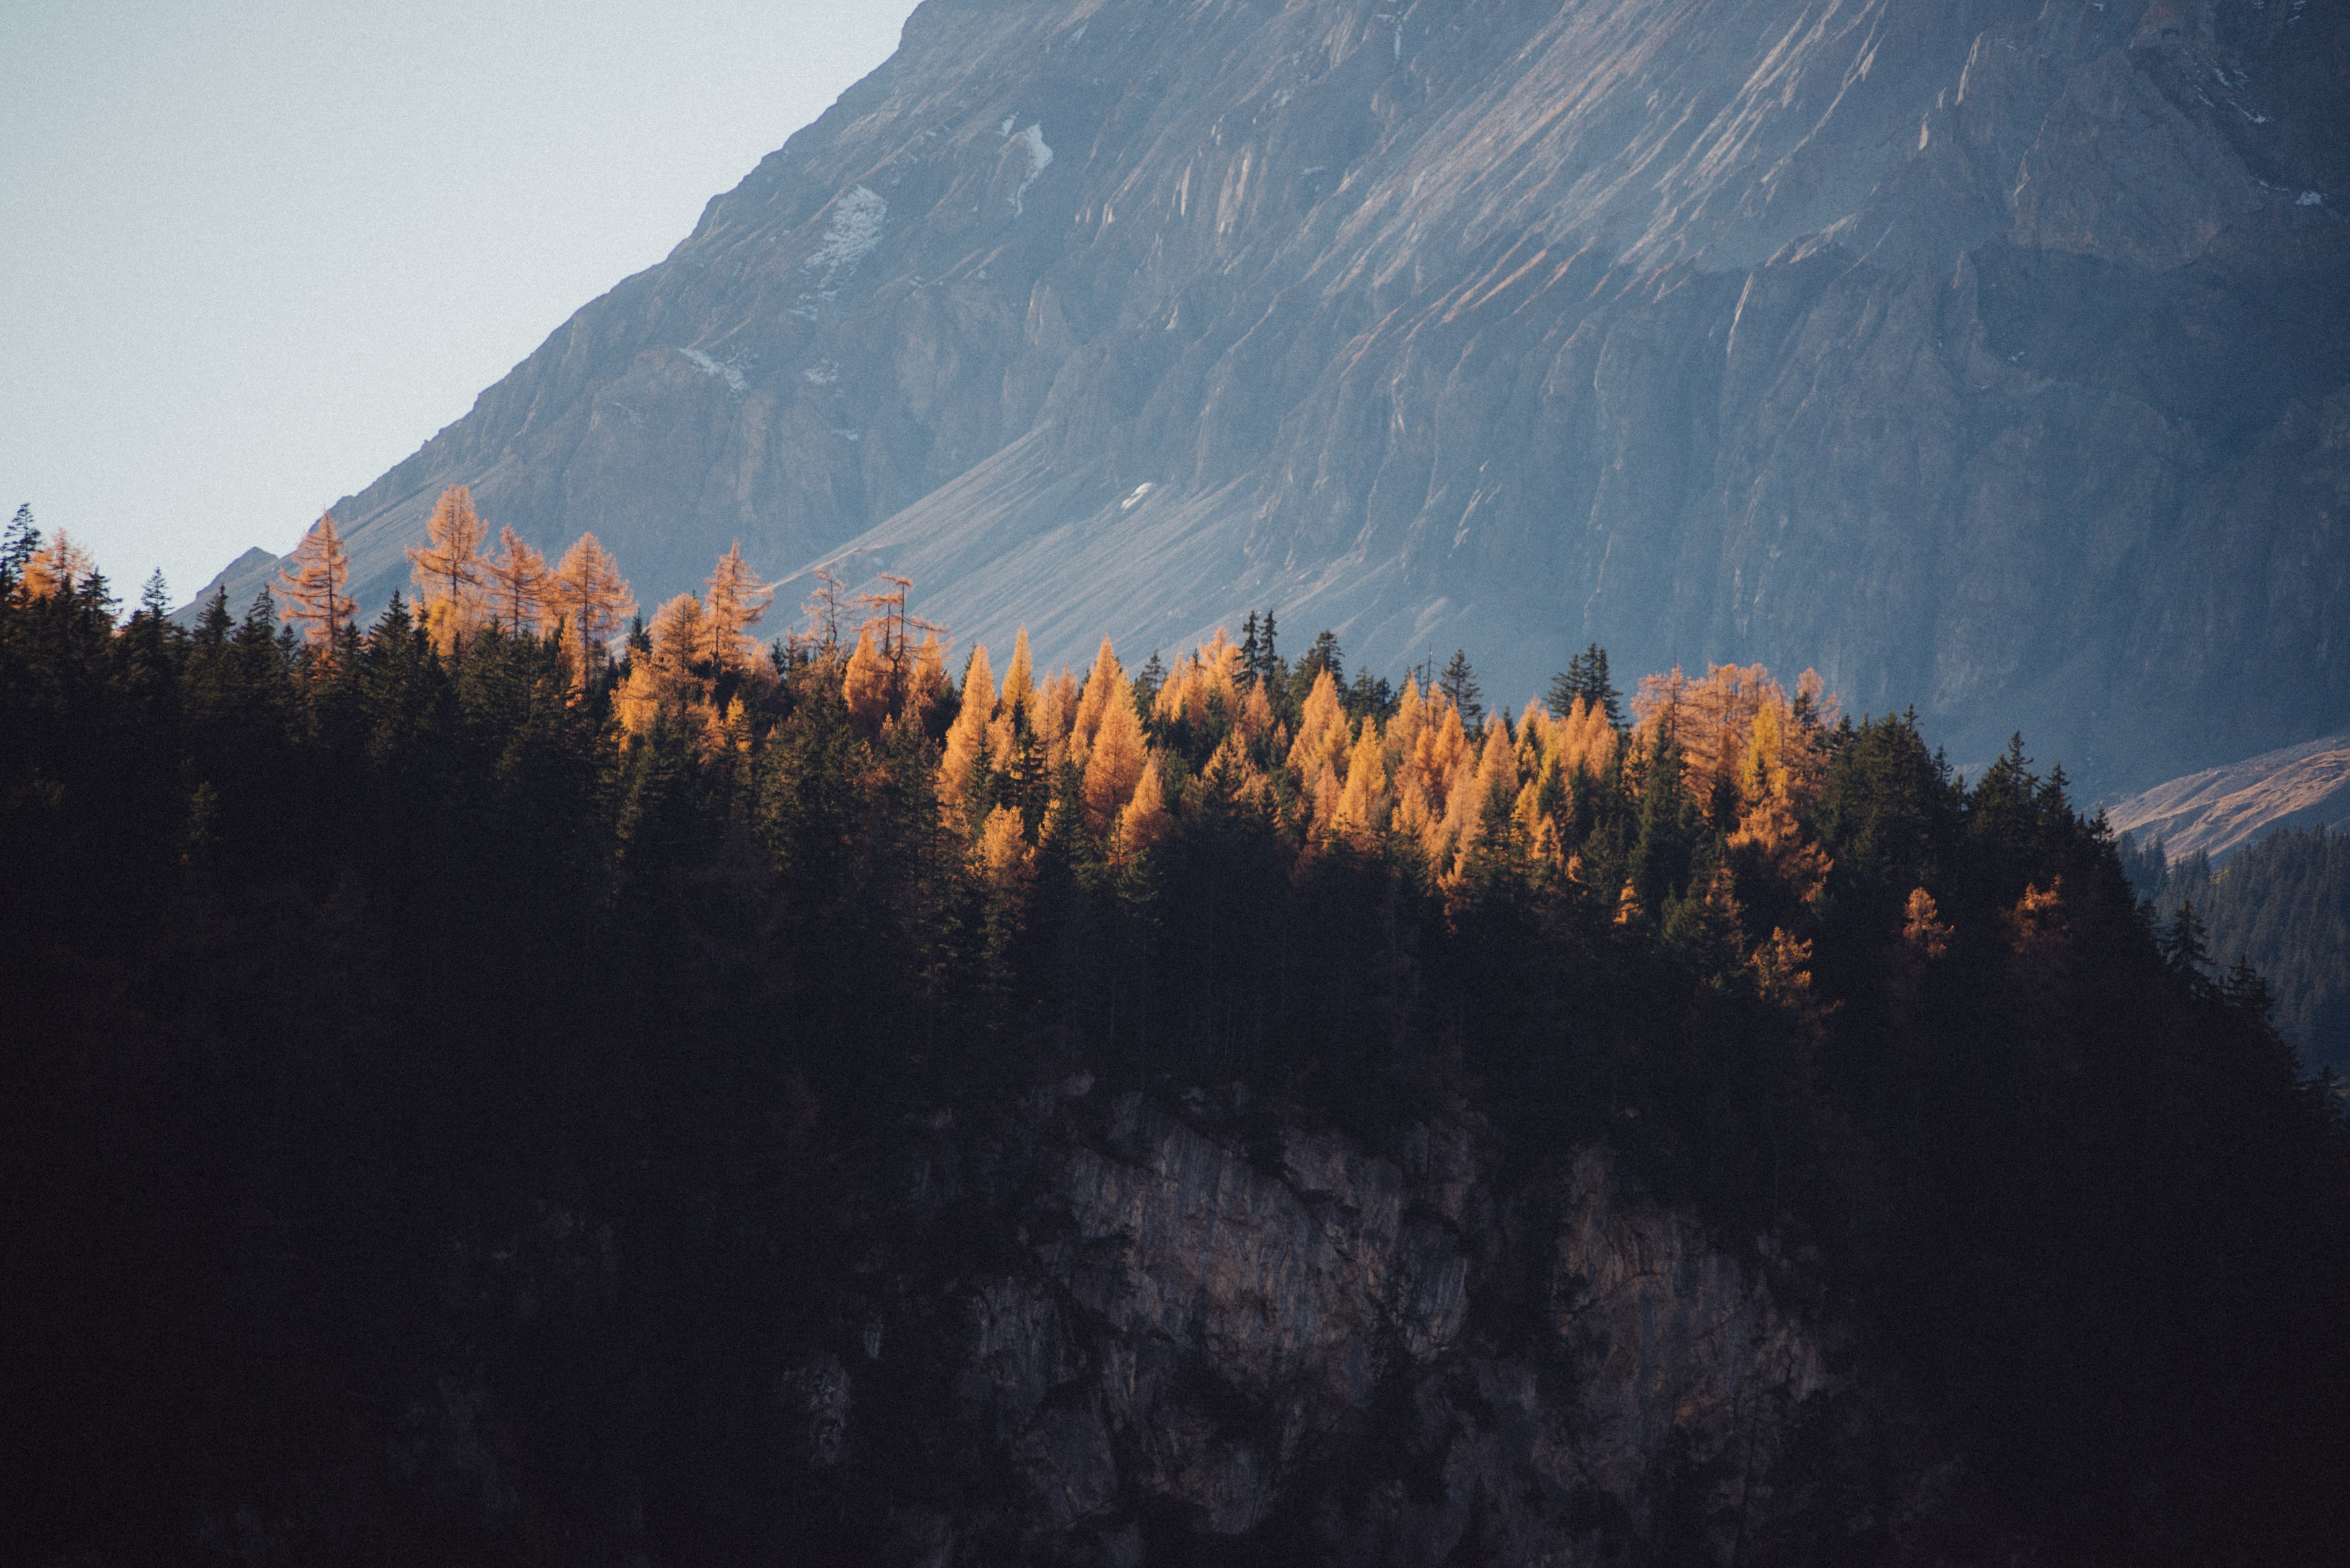 An autumn forest on top of a rocky hill at the foot of tall mountains in Kandersteg